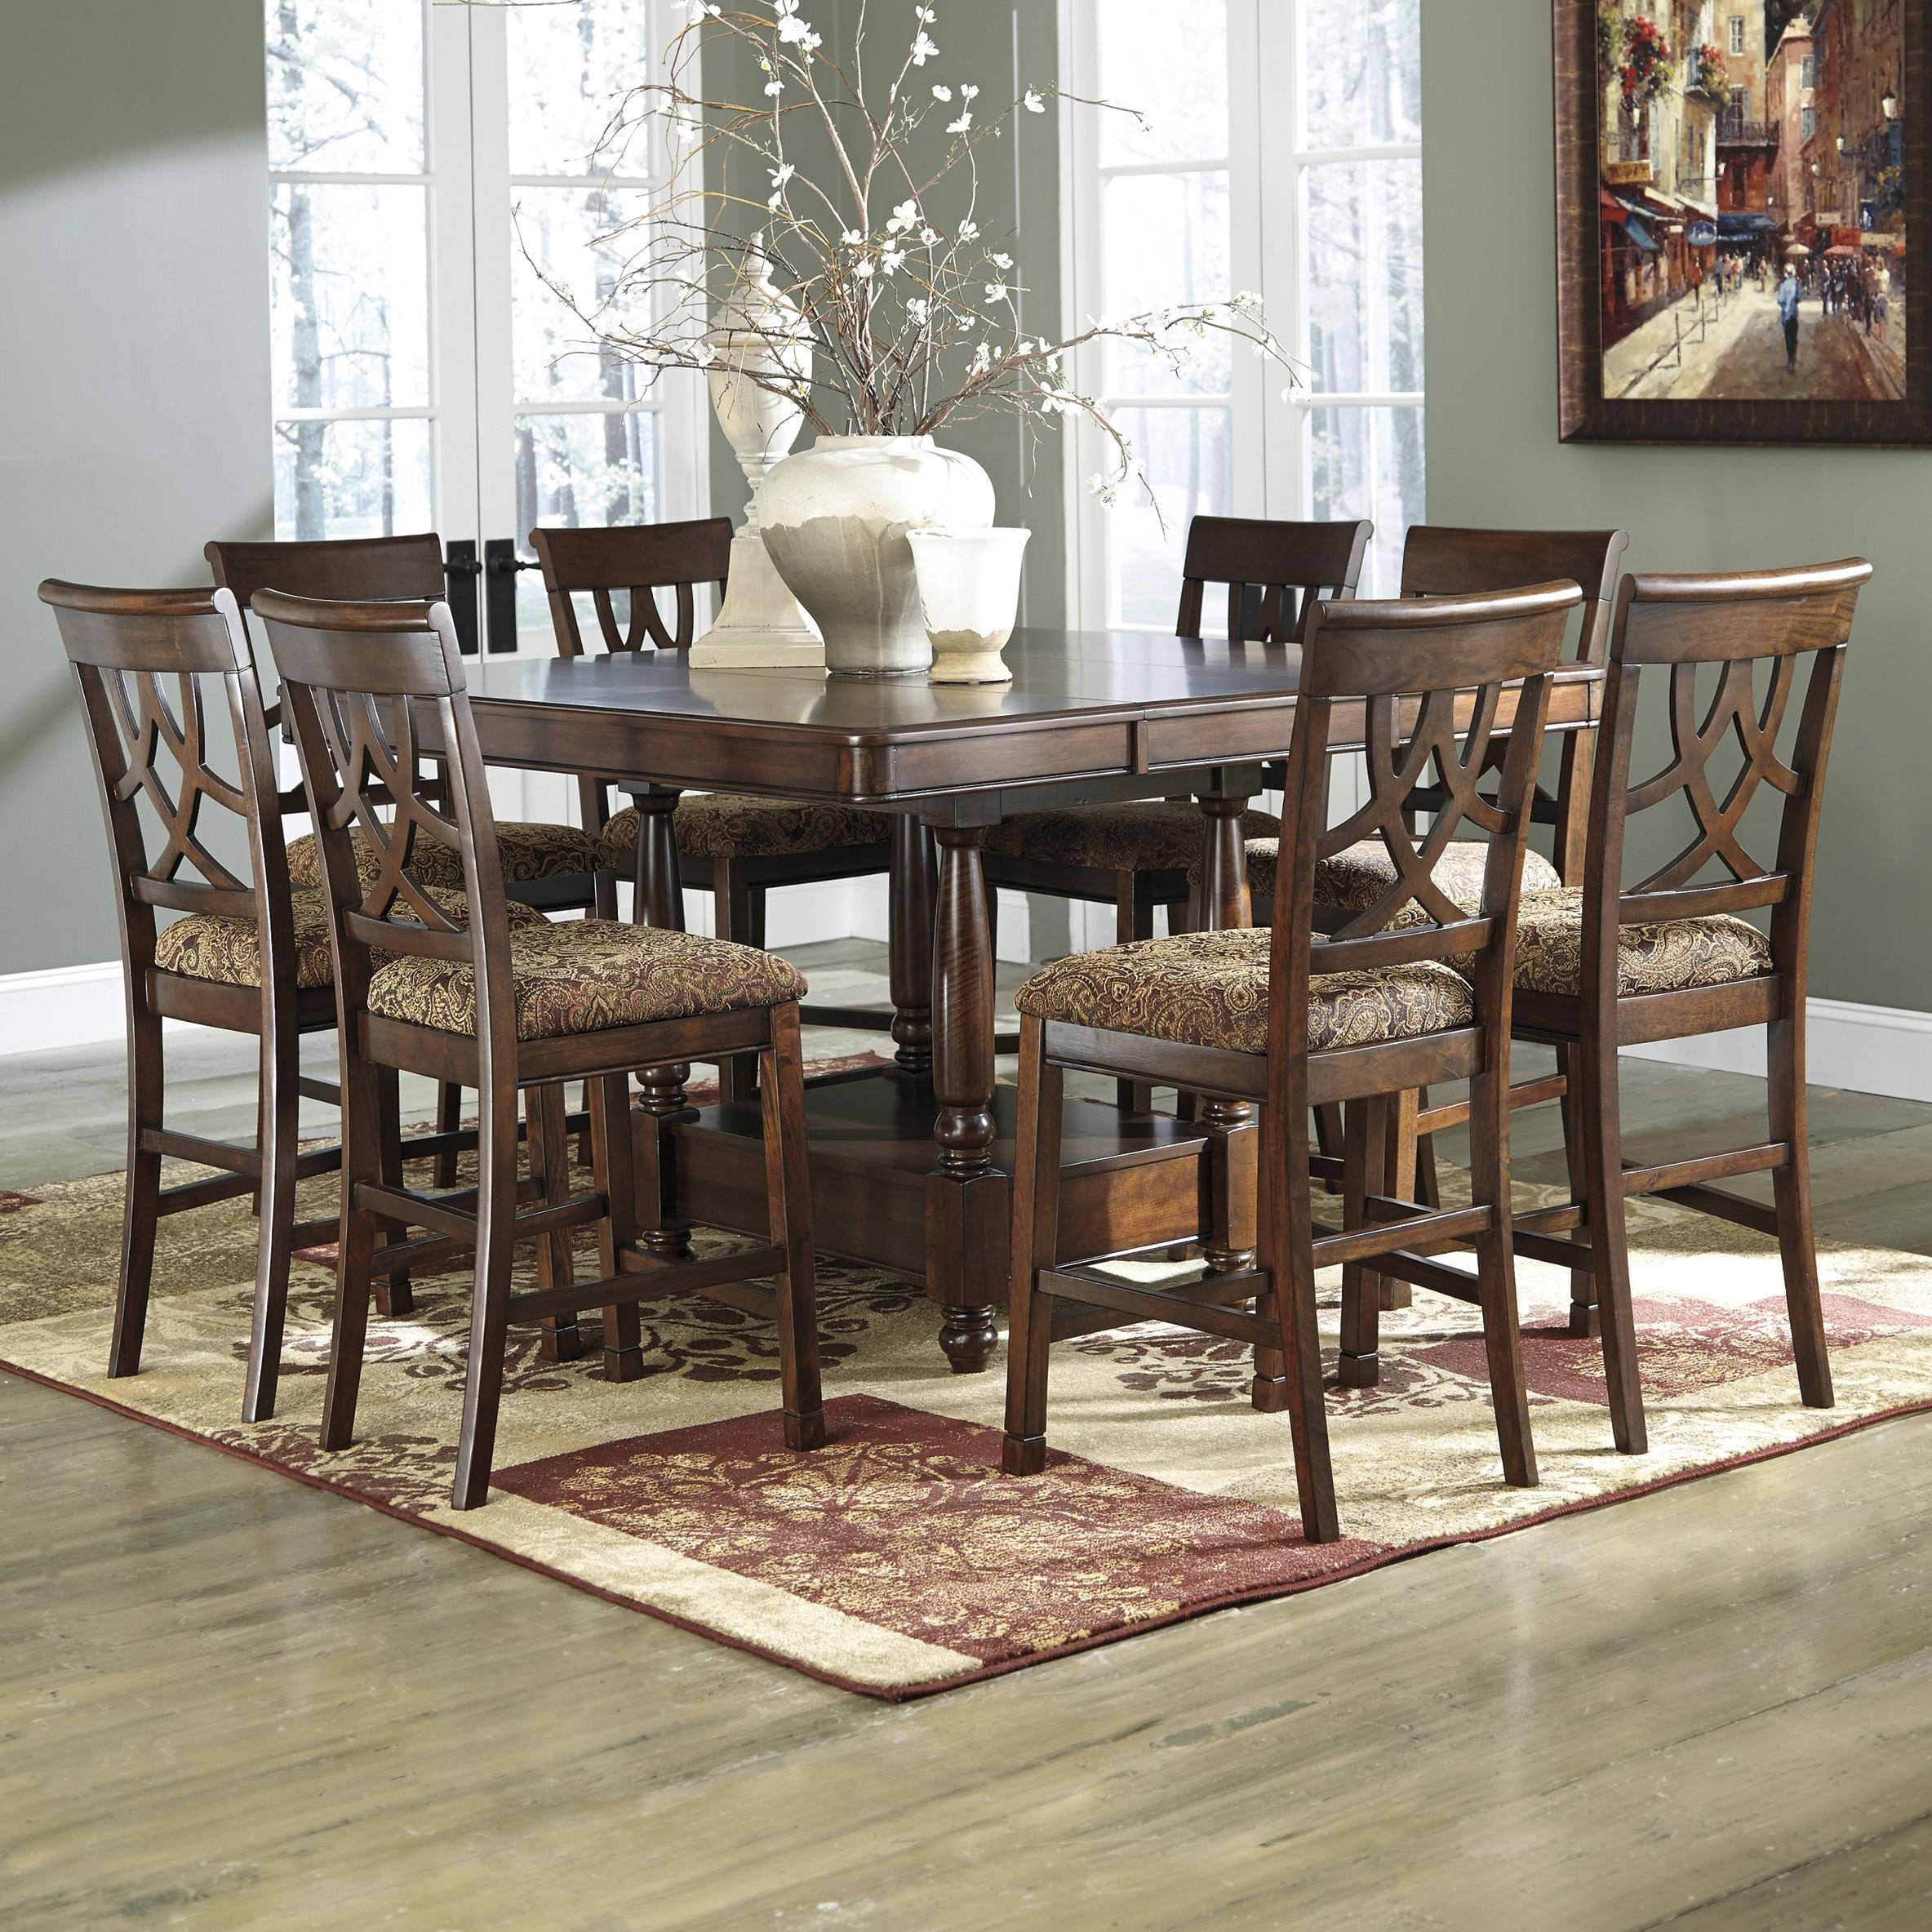 Wonderful Signature Design By Ashley Leahlyn 9 Piece Cherry Finish Counter Table  Extension Set   Olindeu0027s Furniture   Pub Table And Stool Sets